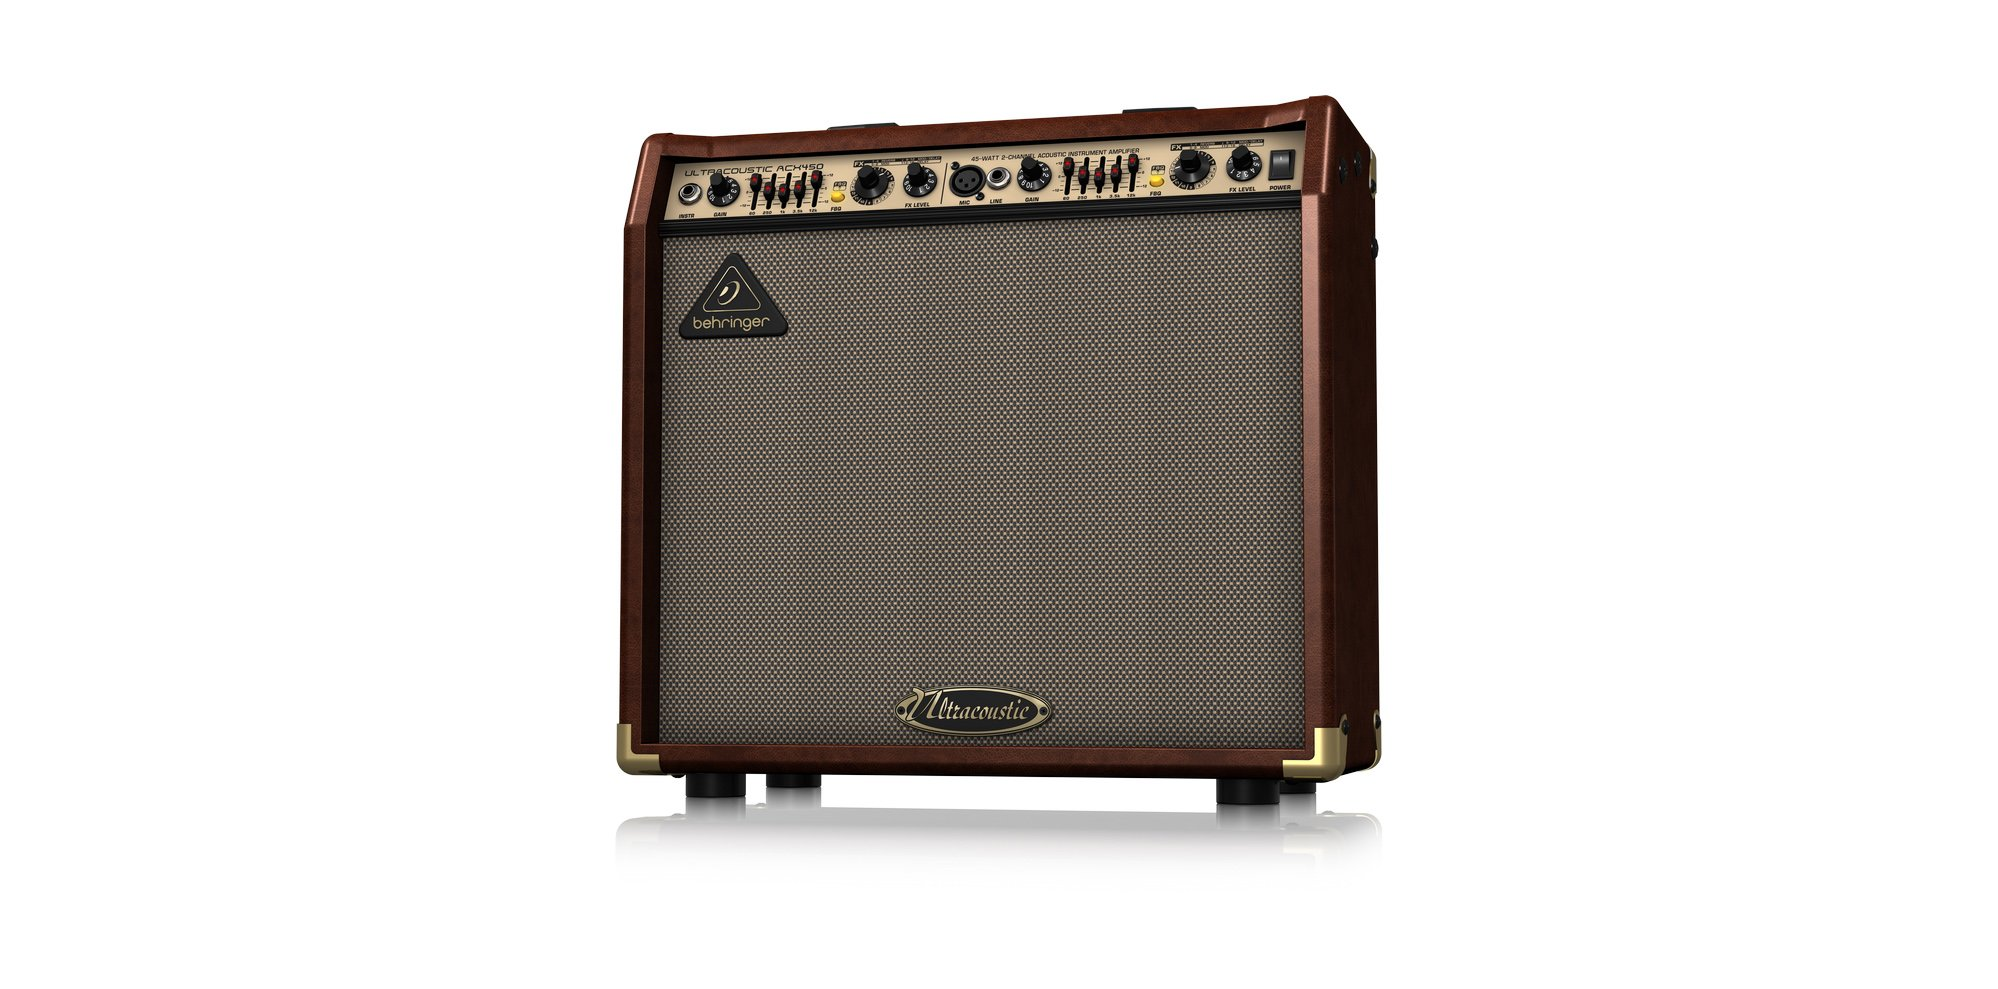 behringer acx450 ultracoustic 45 w 2 channel acoustic instrument amplifier full compass systems. Black Bedroom Furniture Sets. Home Design Ideas